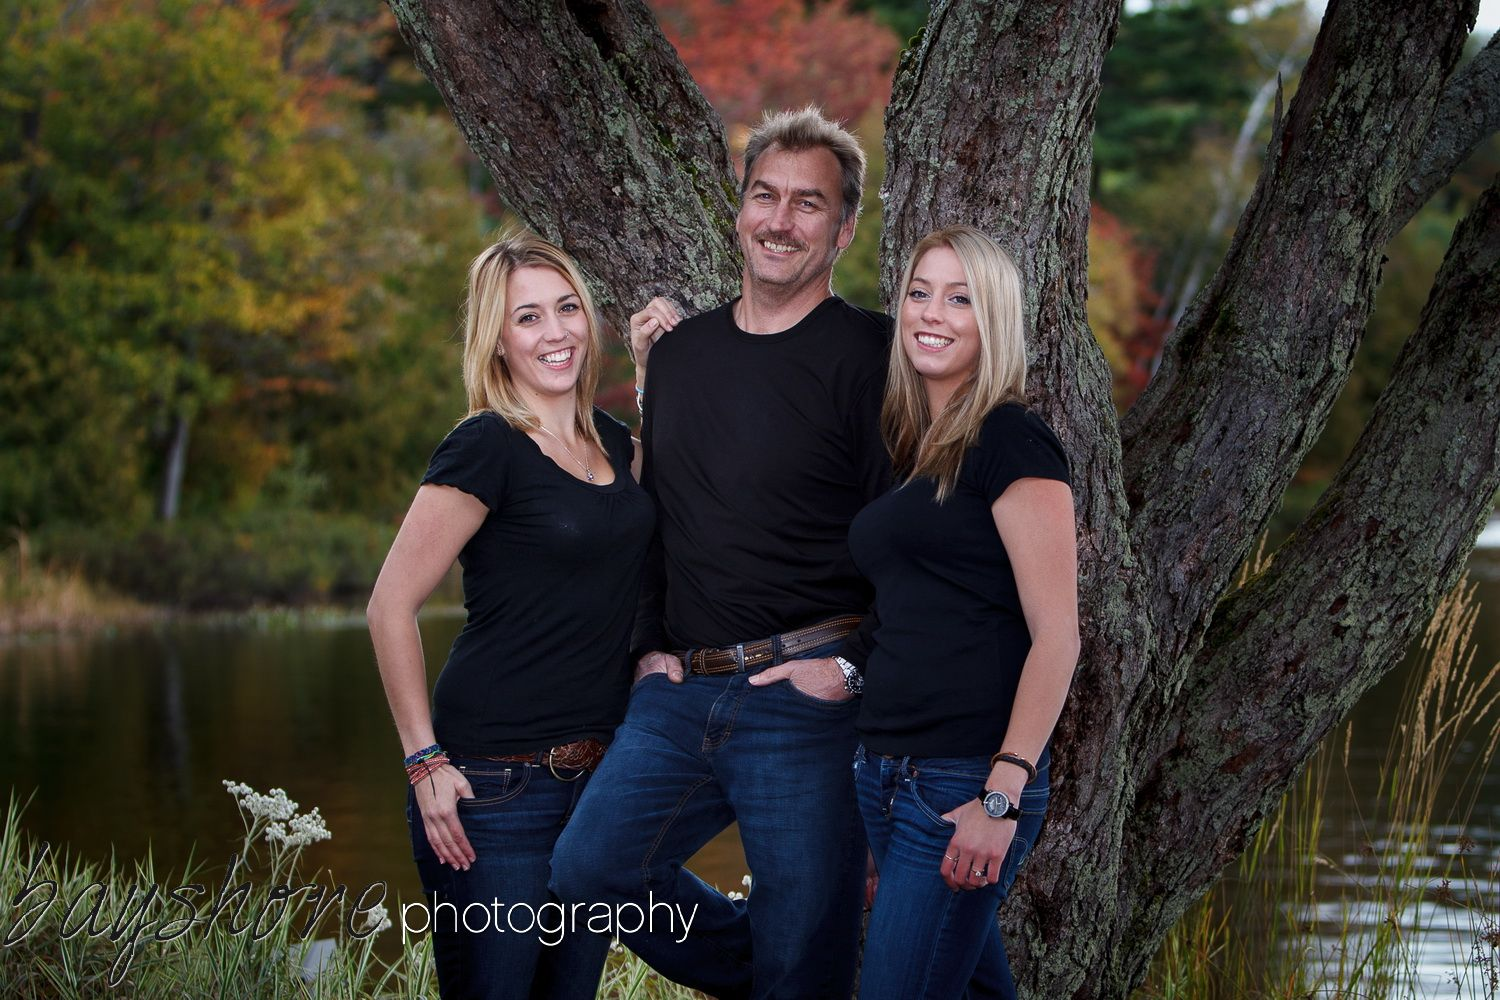 The natural beauty of Parry Sound, Muskoka makes for a great backdrop for outdoor family portriat sessions. Pin from bayshorephotography.com